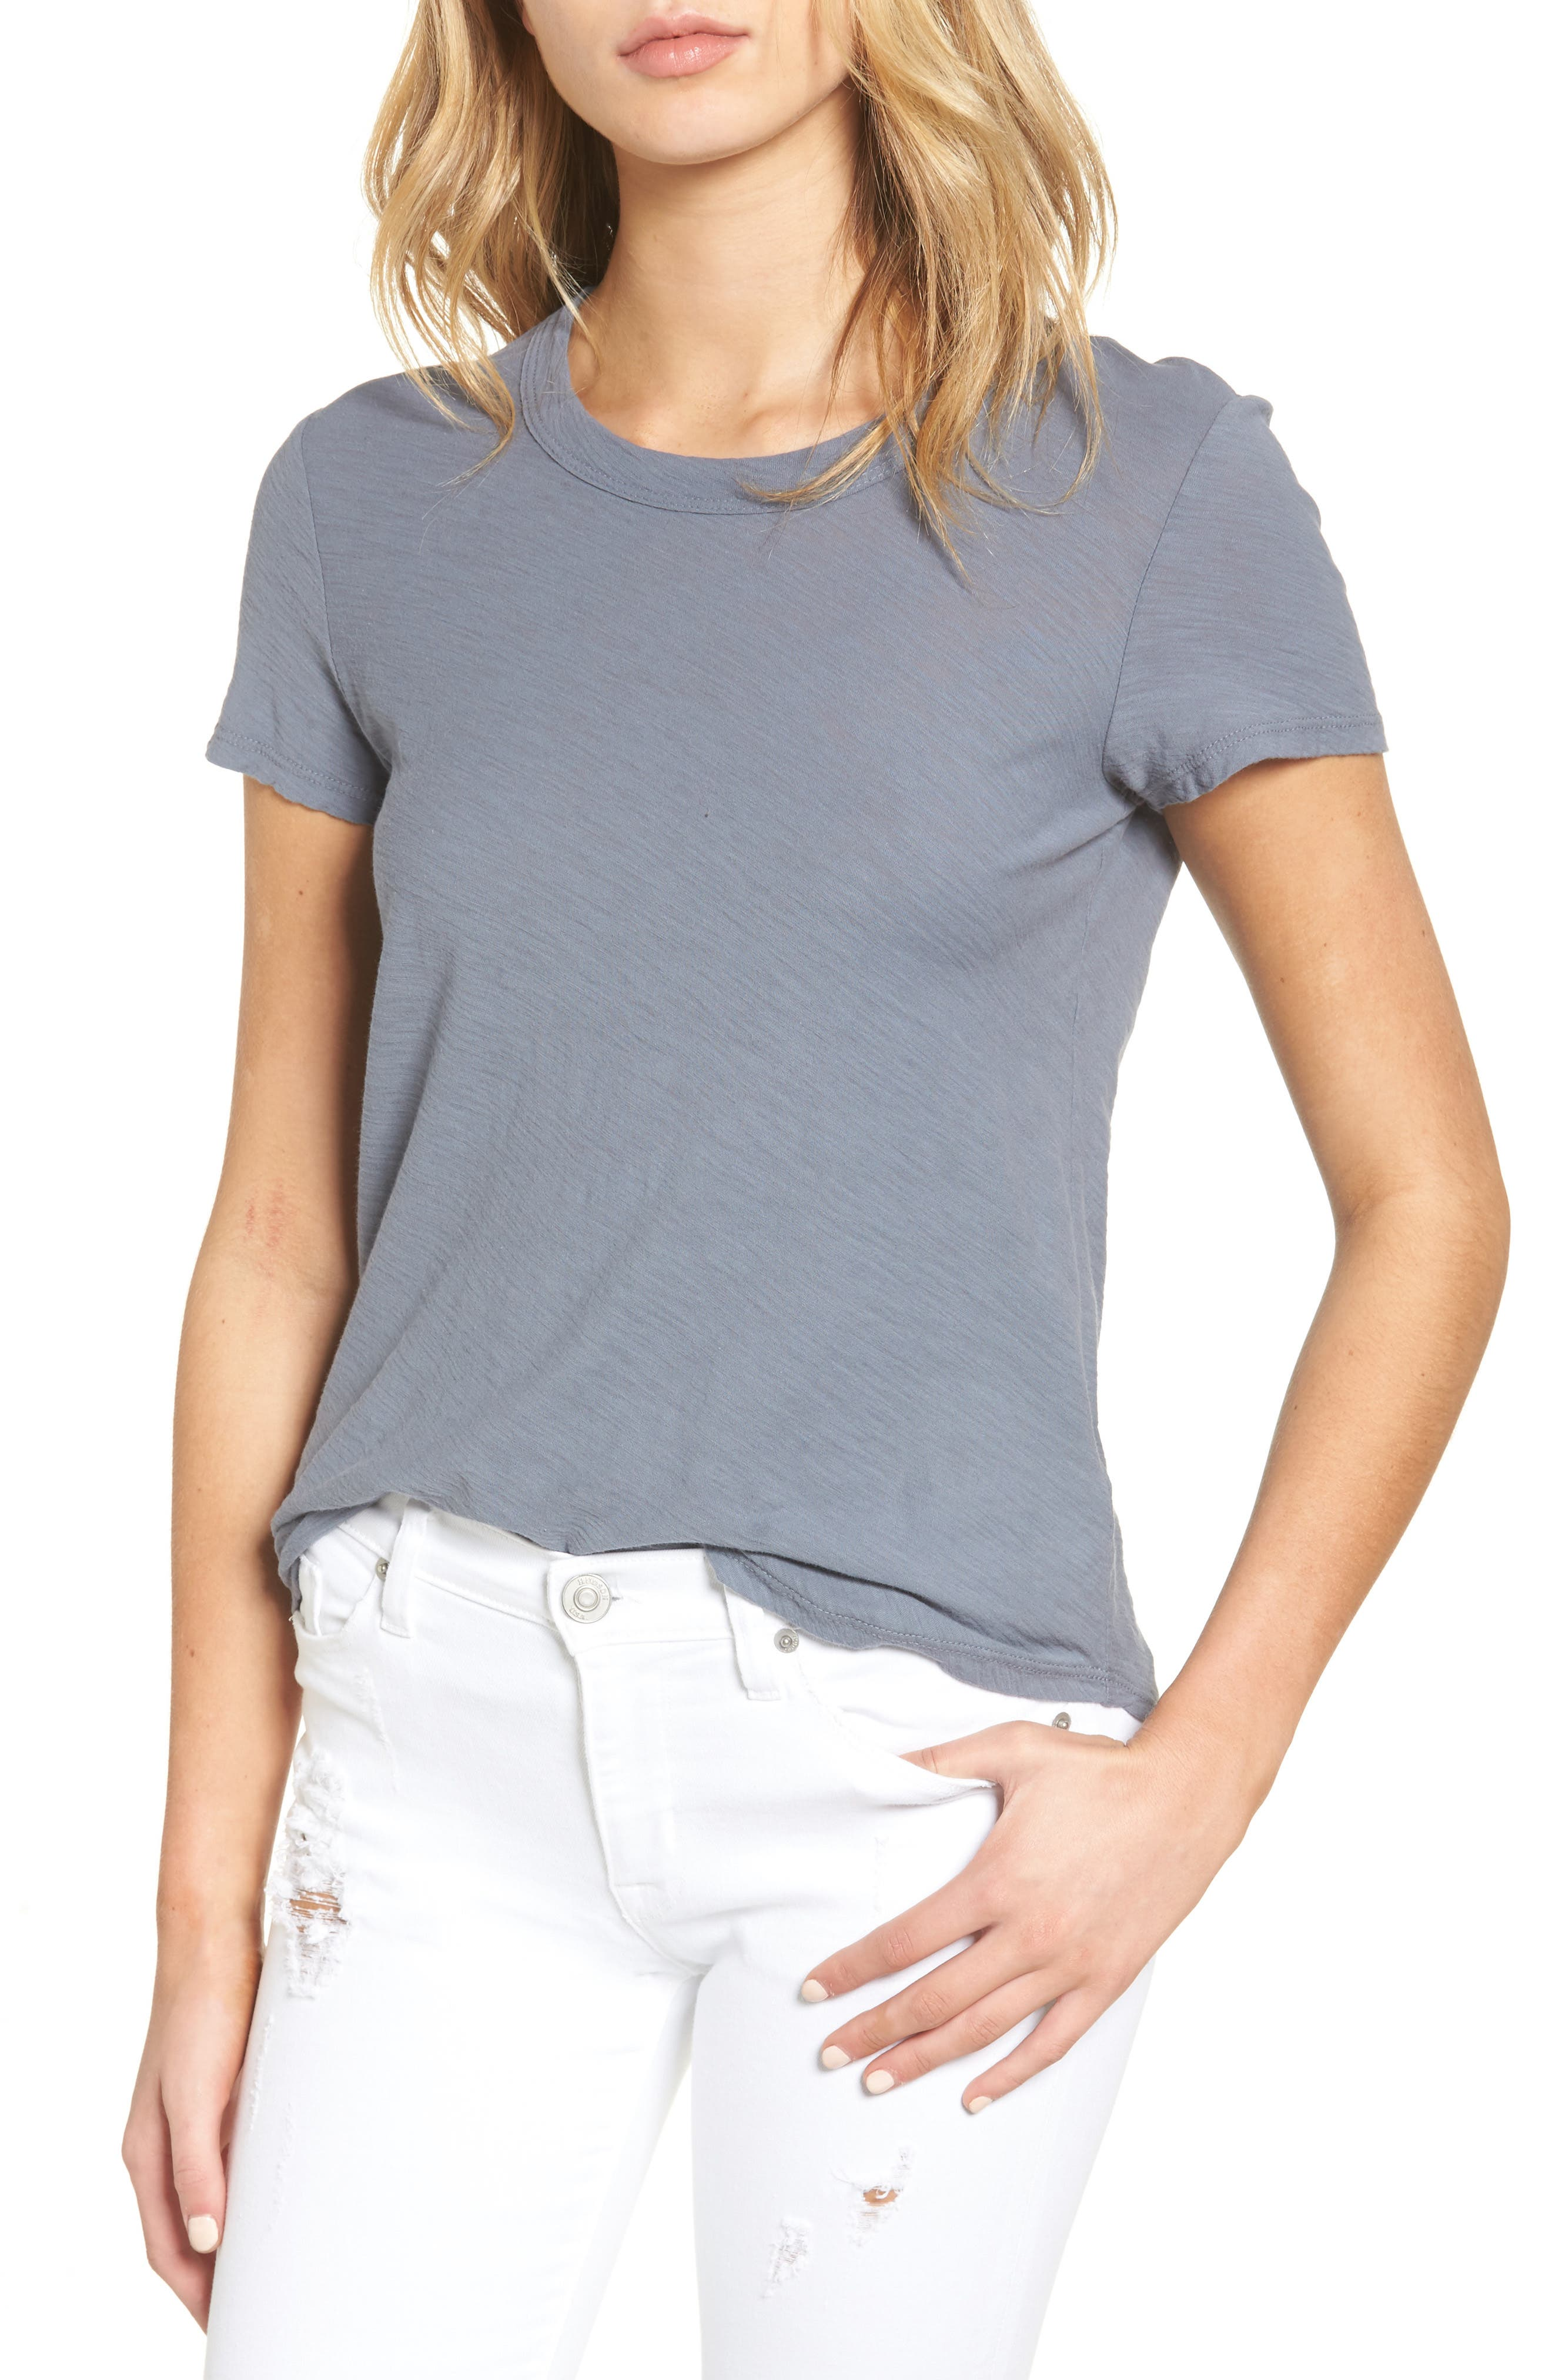 James Perse Sheer Slub Crewneck Tee